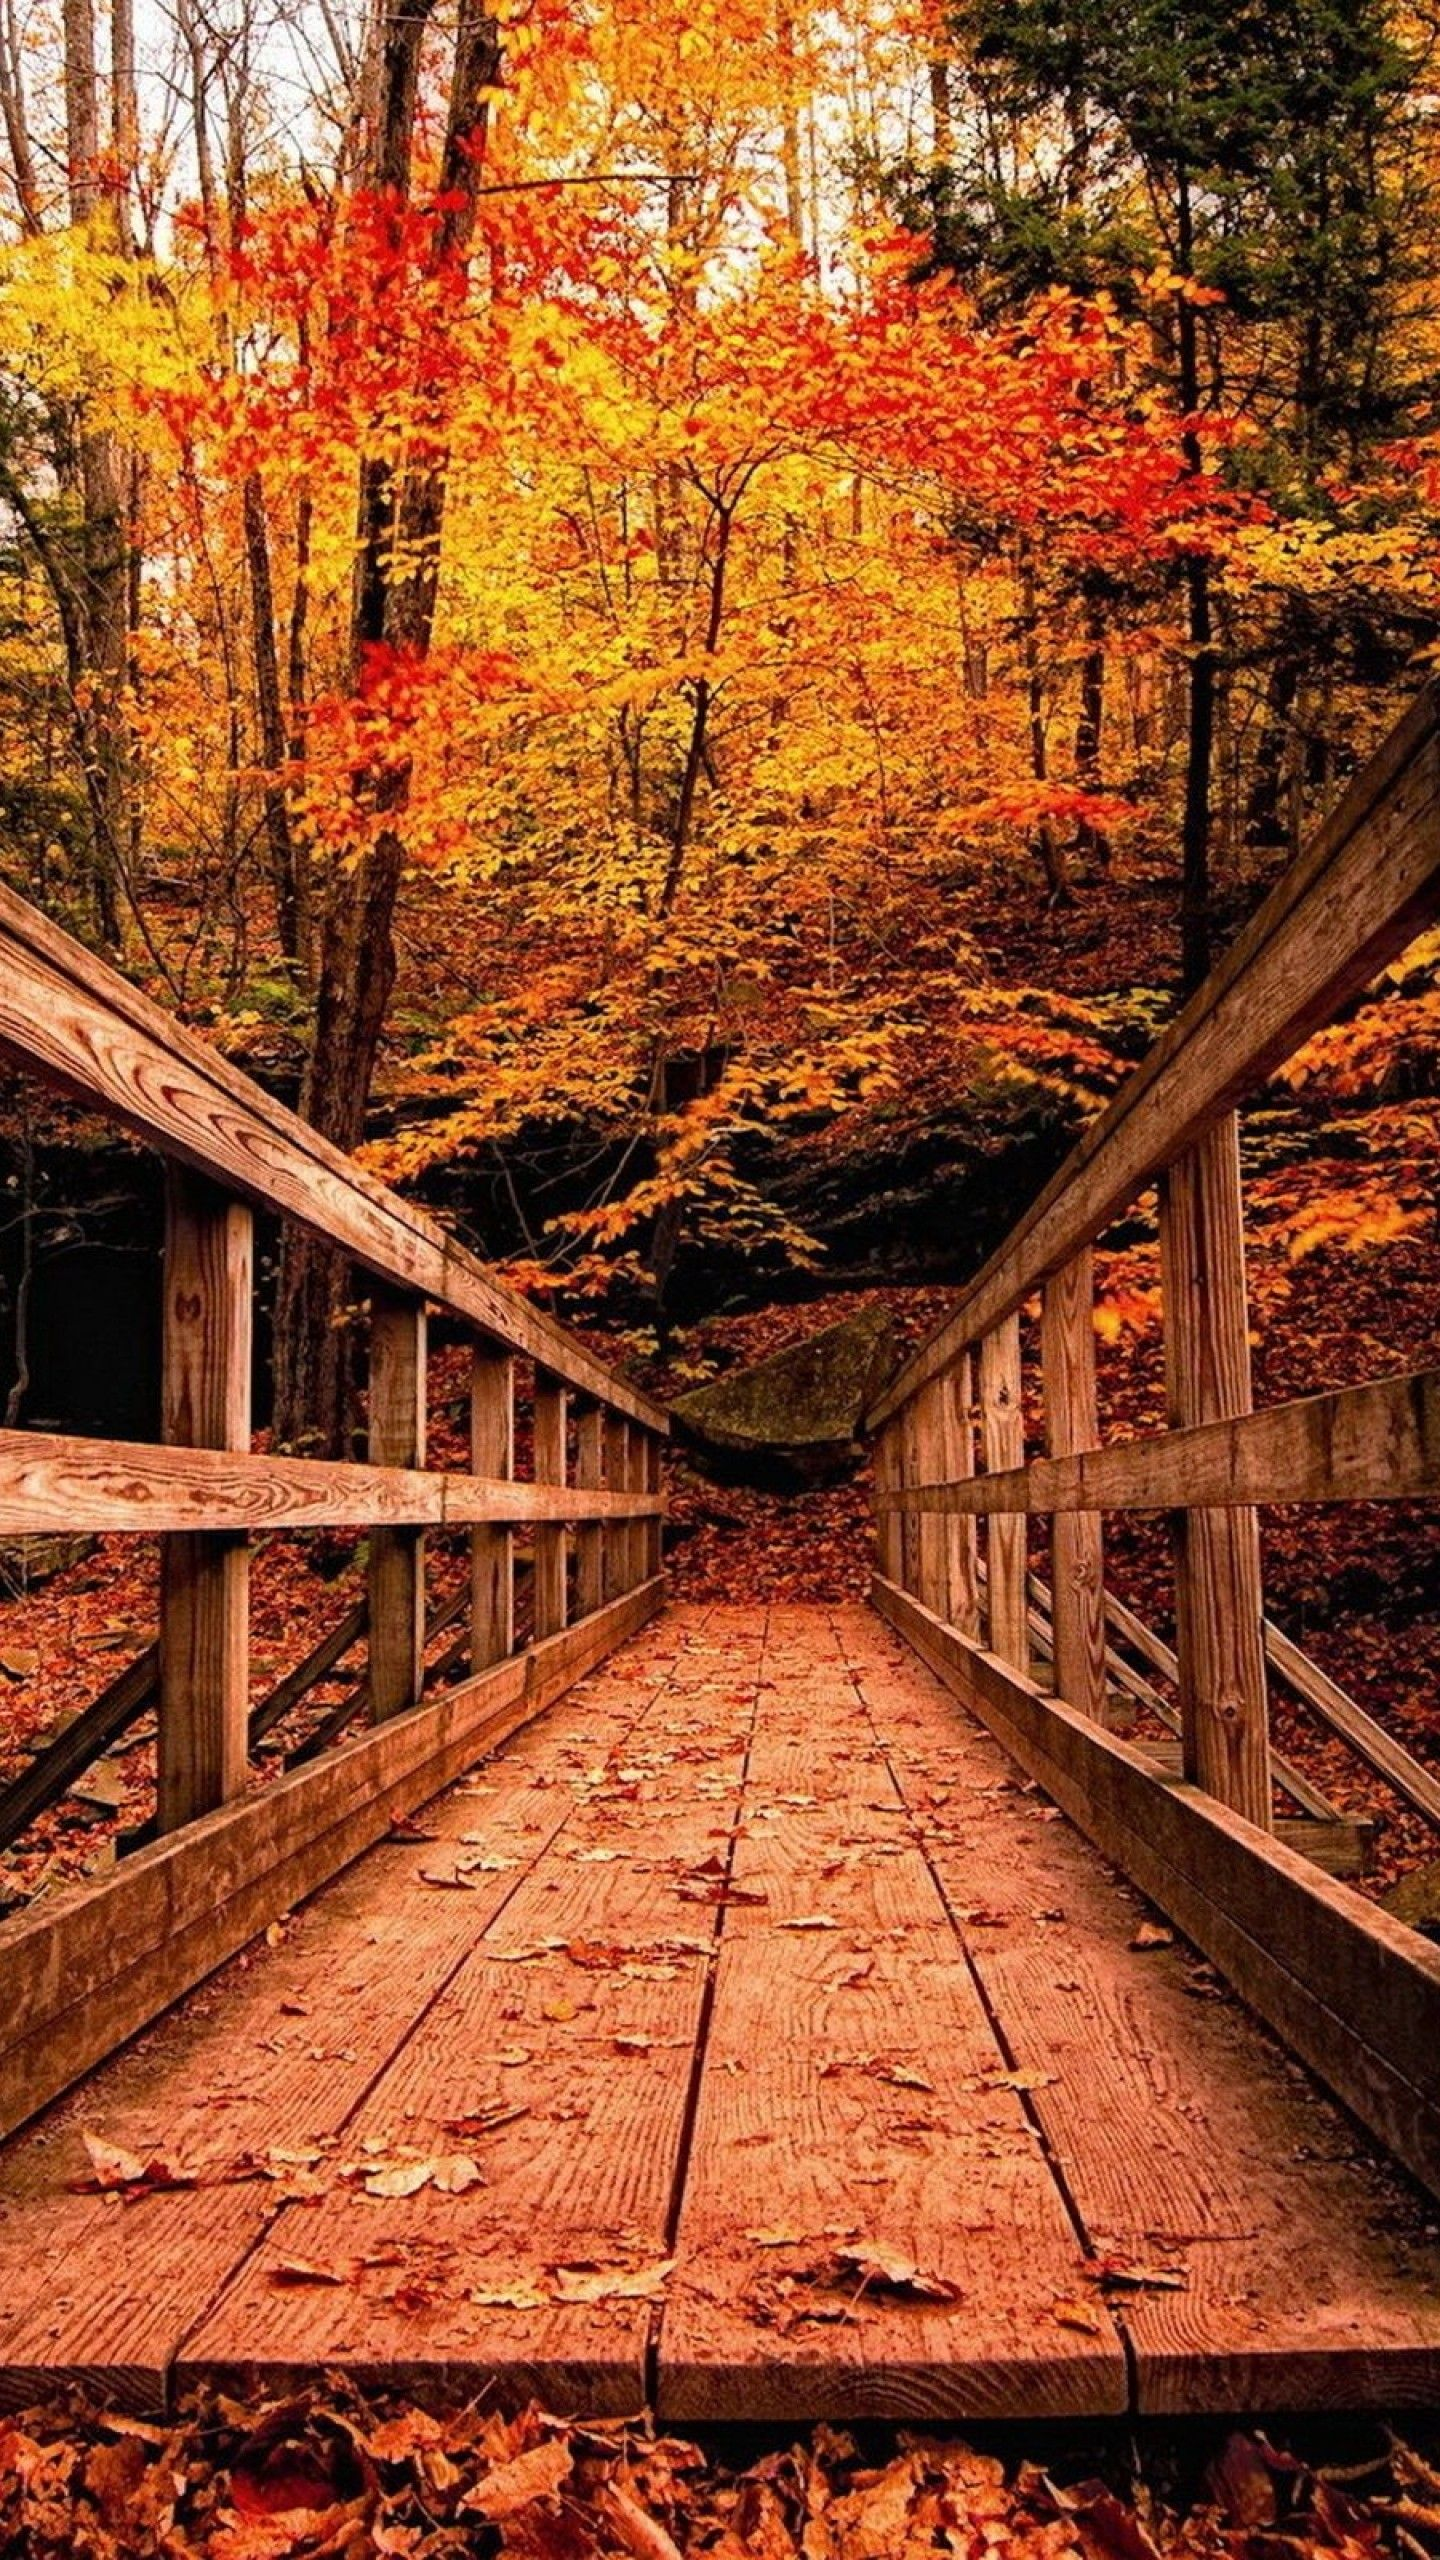 Fall Android Wallpaper Android Wallpaper Autumn Colors Wooden Bridges Pinterest